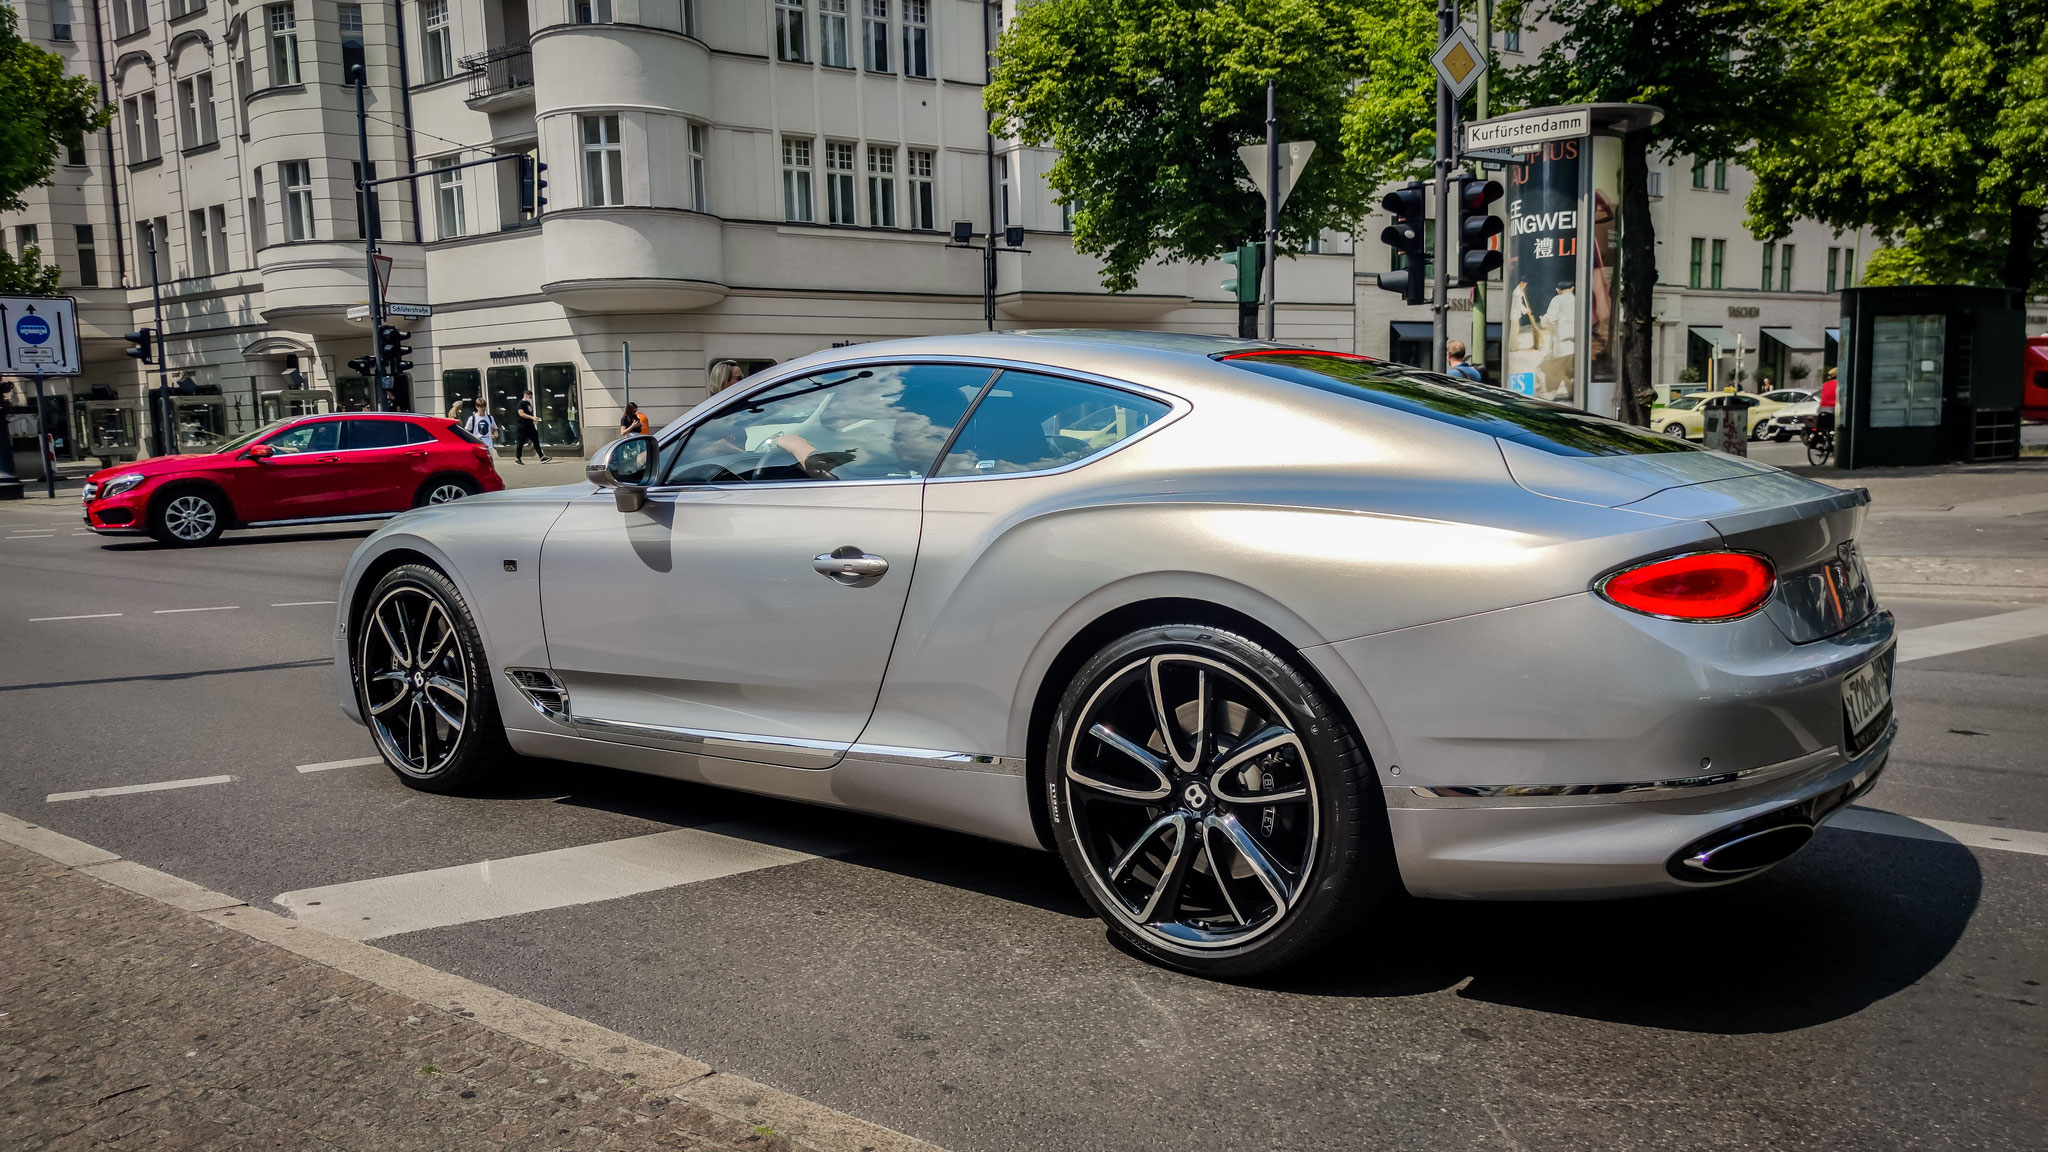 Bentley Continental GT - X-728-CH-799 (RUS)